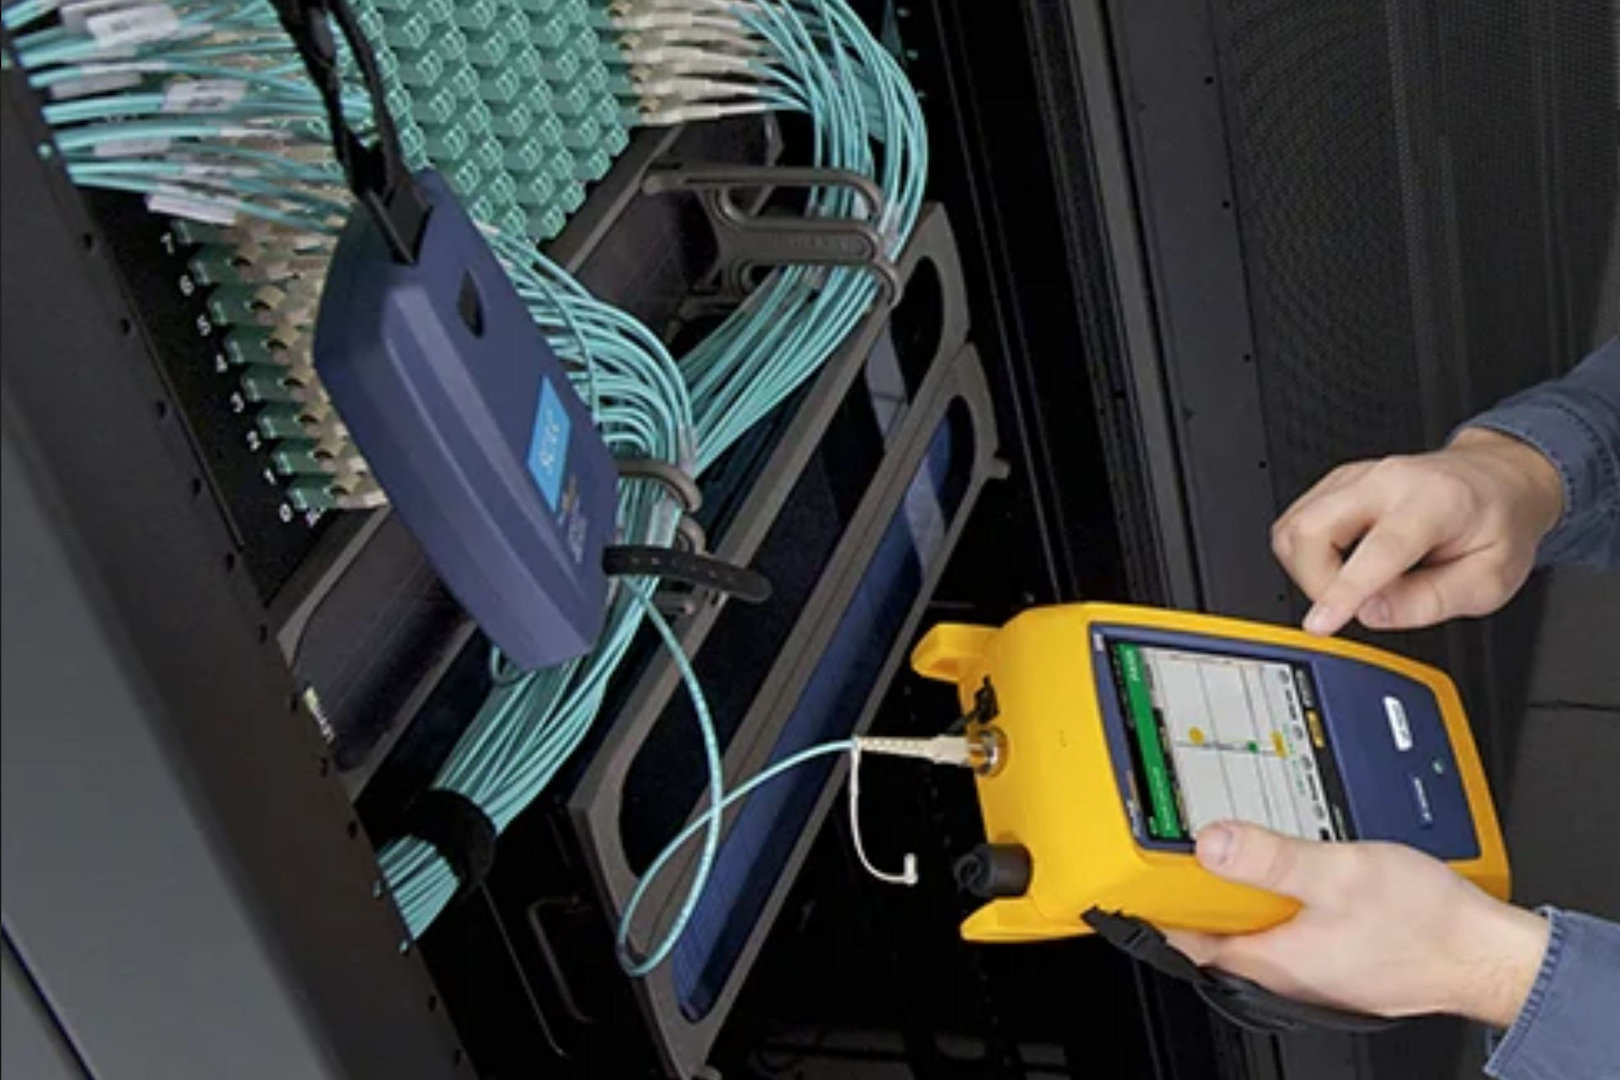 microngroup technician using fluke network cable tester for testing data cables